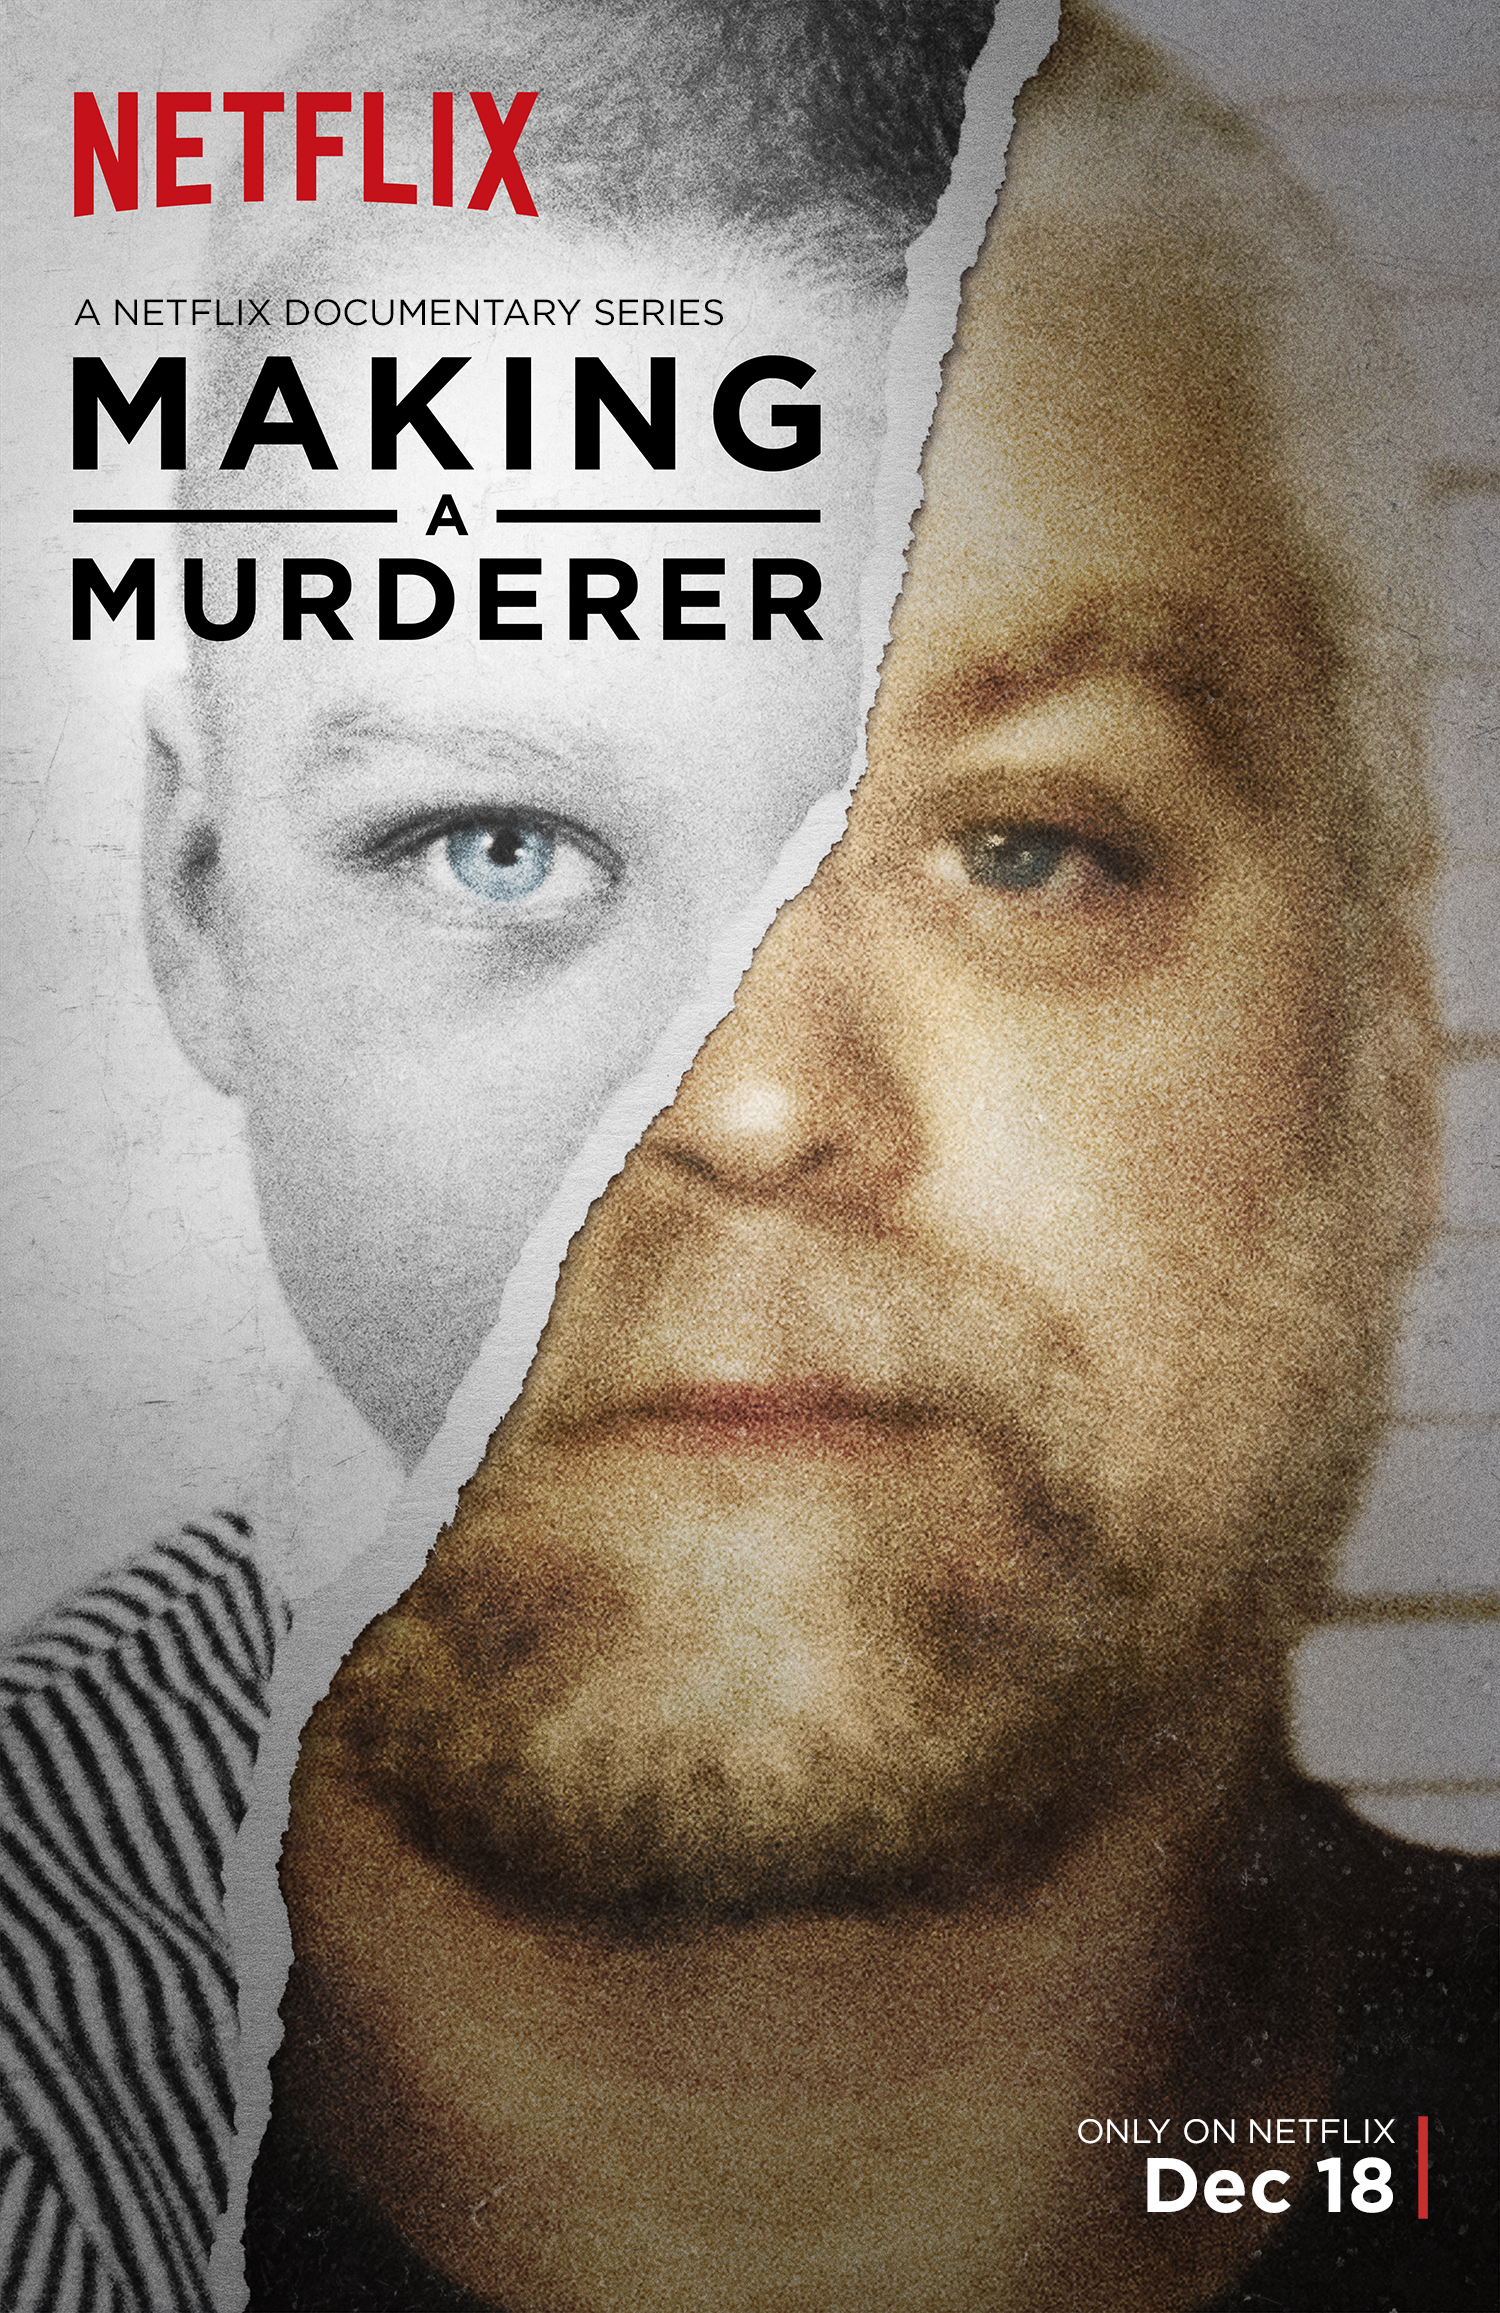 Netflix jumps into true-crime documentaries with Making a Murderer